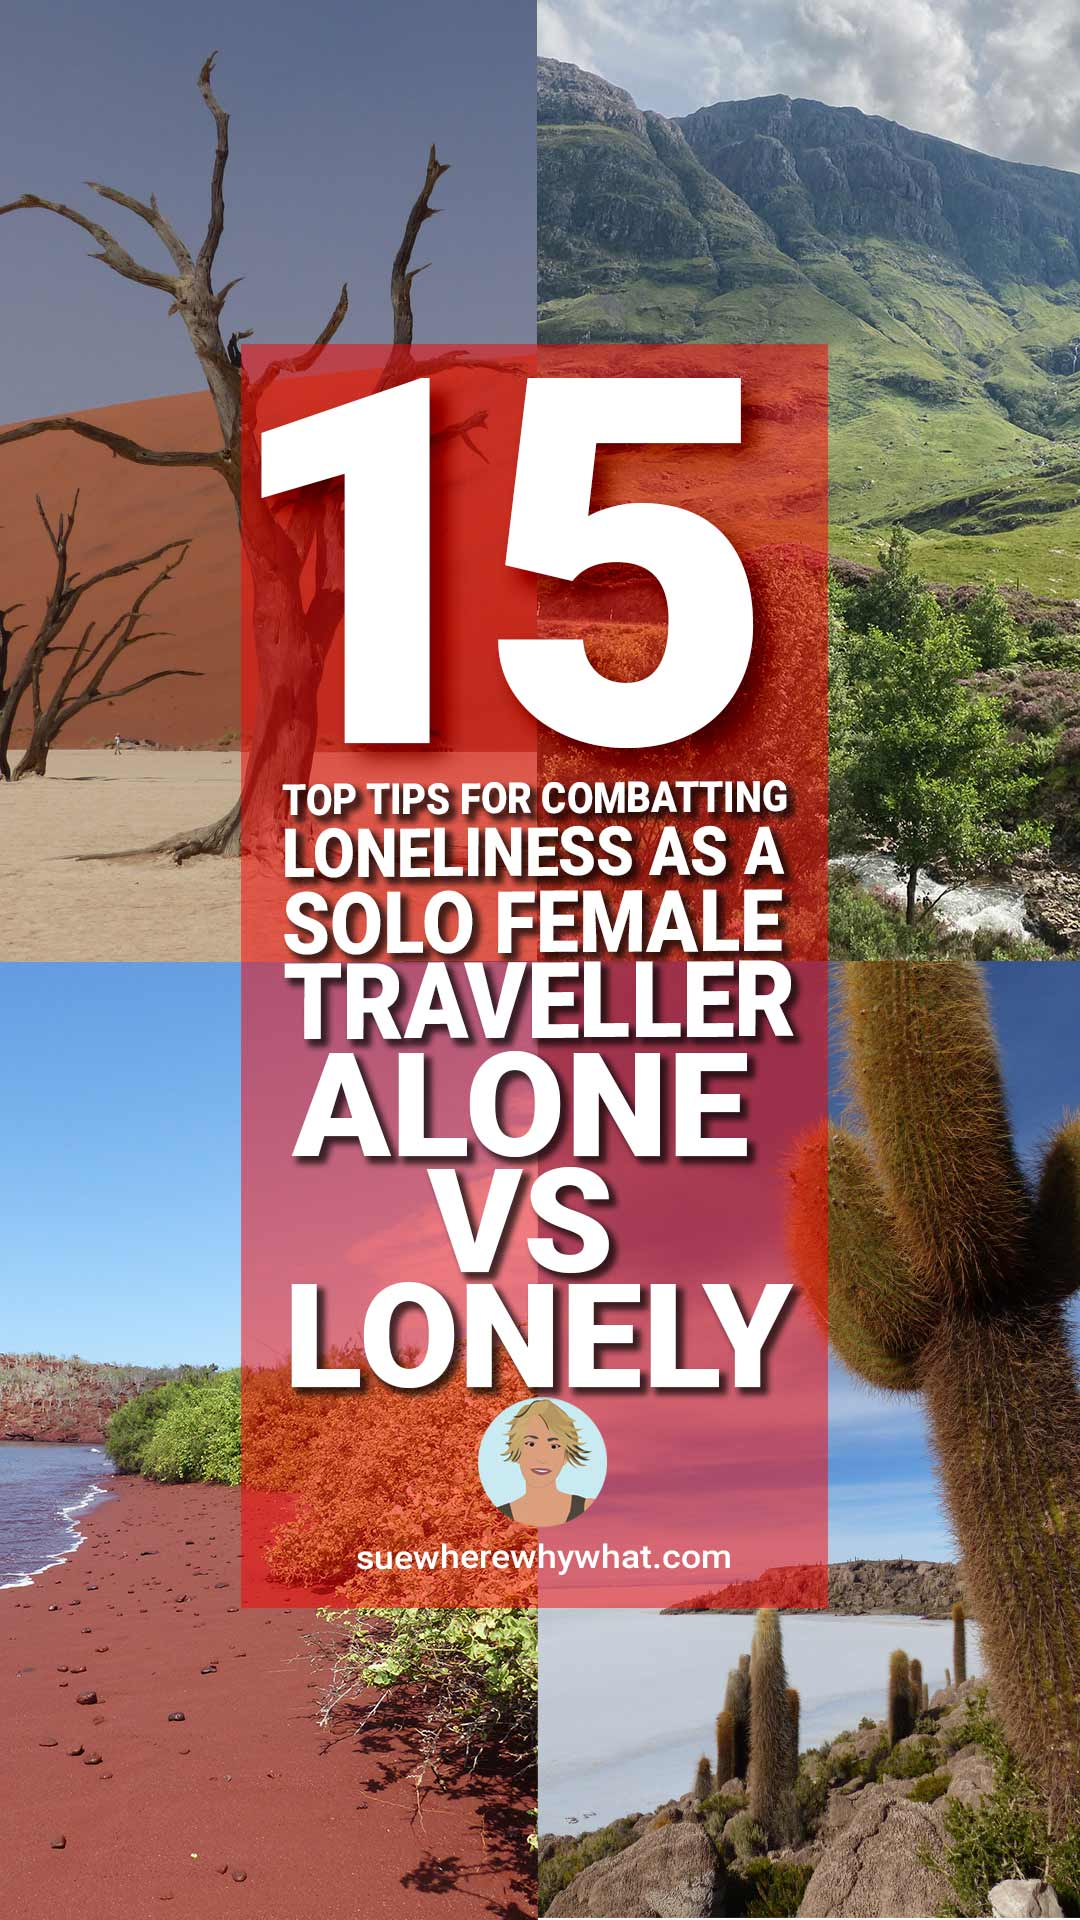 Alone vs Lonely – 15 Top Tips for Combatting Loneliness as a Solo Female Traveller